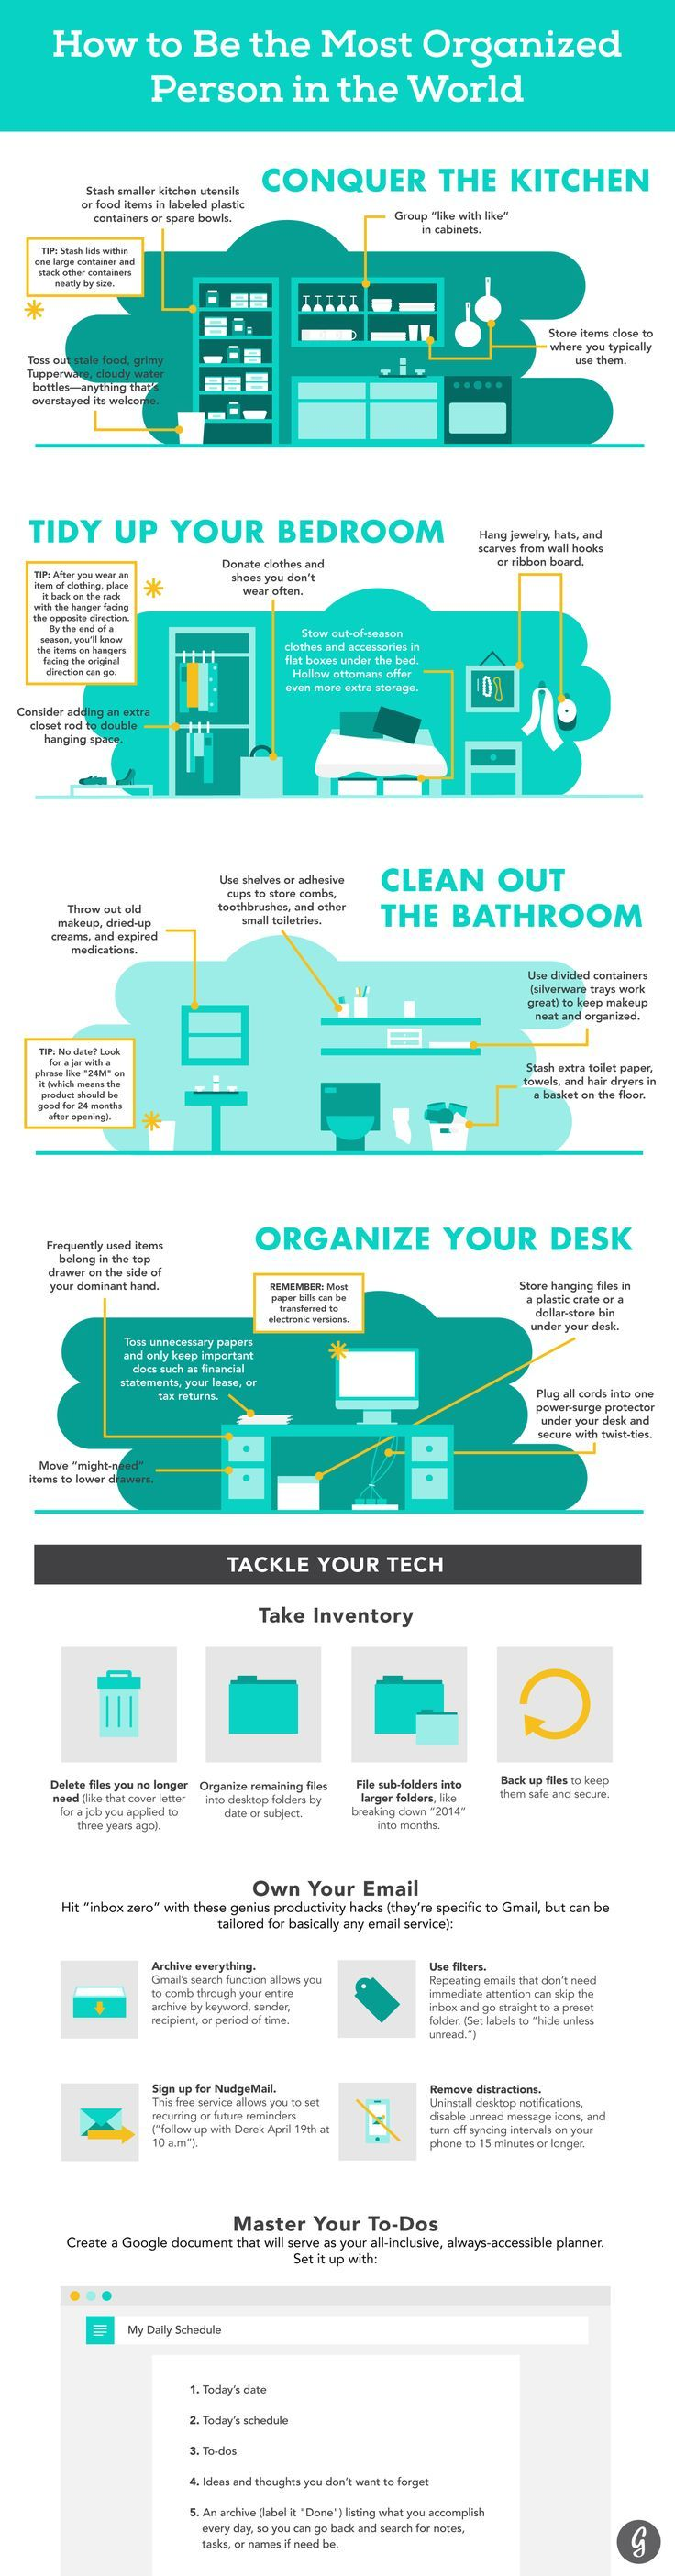 The Ultimate Guide to Being the Most Organized Person in the World